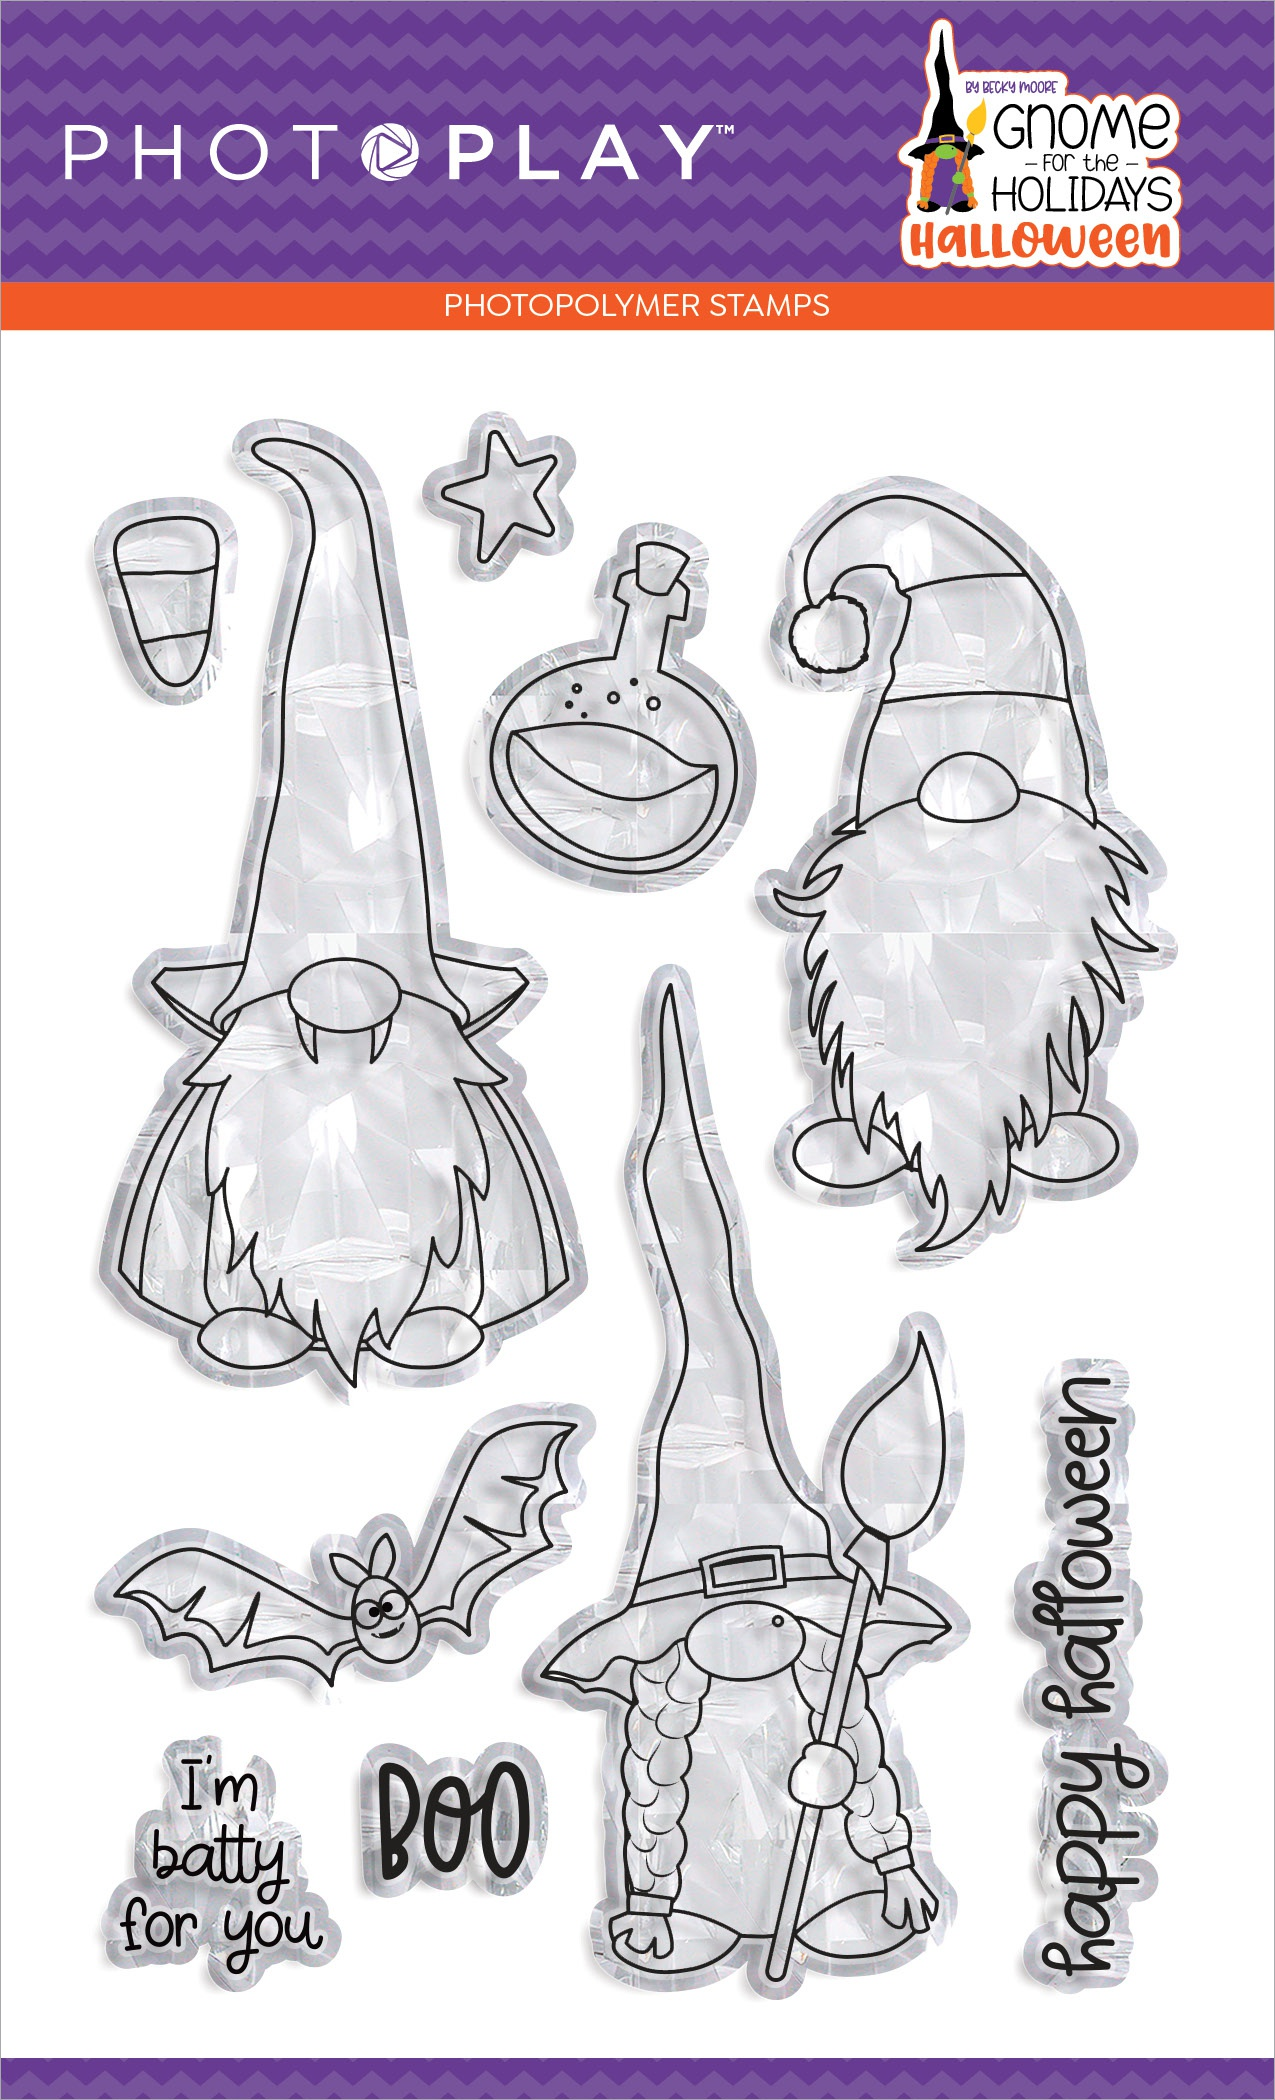 PhotoPlay Photopolymer Stamp-Gnome For Halloween